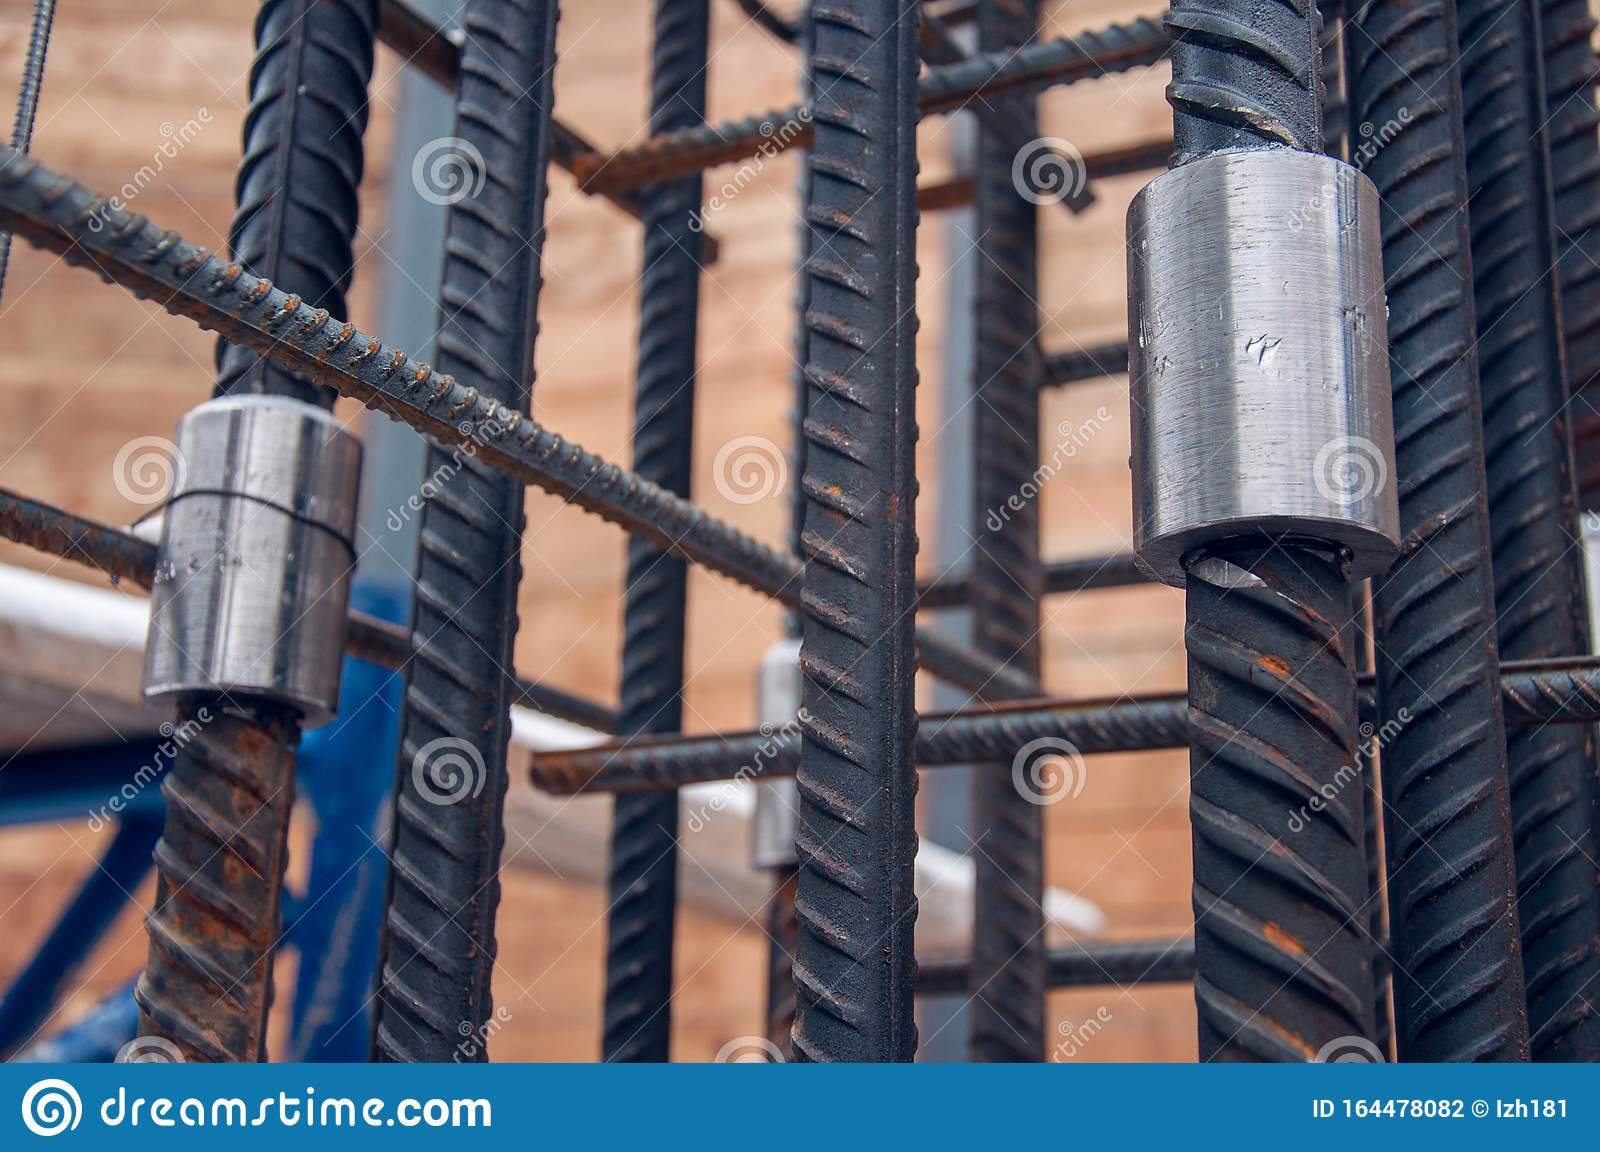 The Method Of Connecting Reinforcing Bars For Concrete